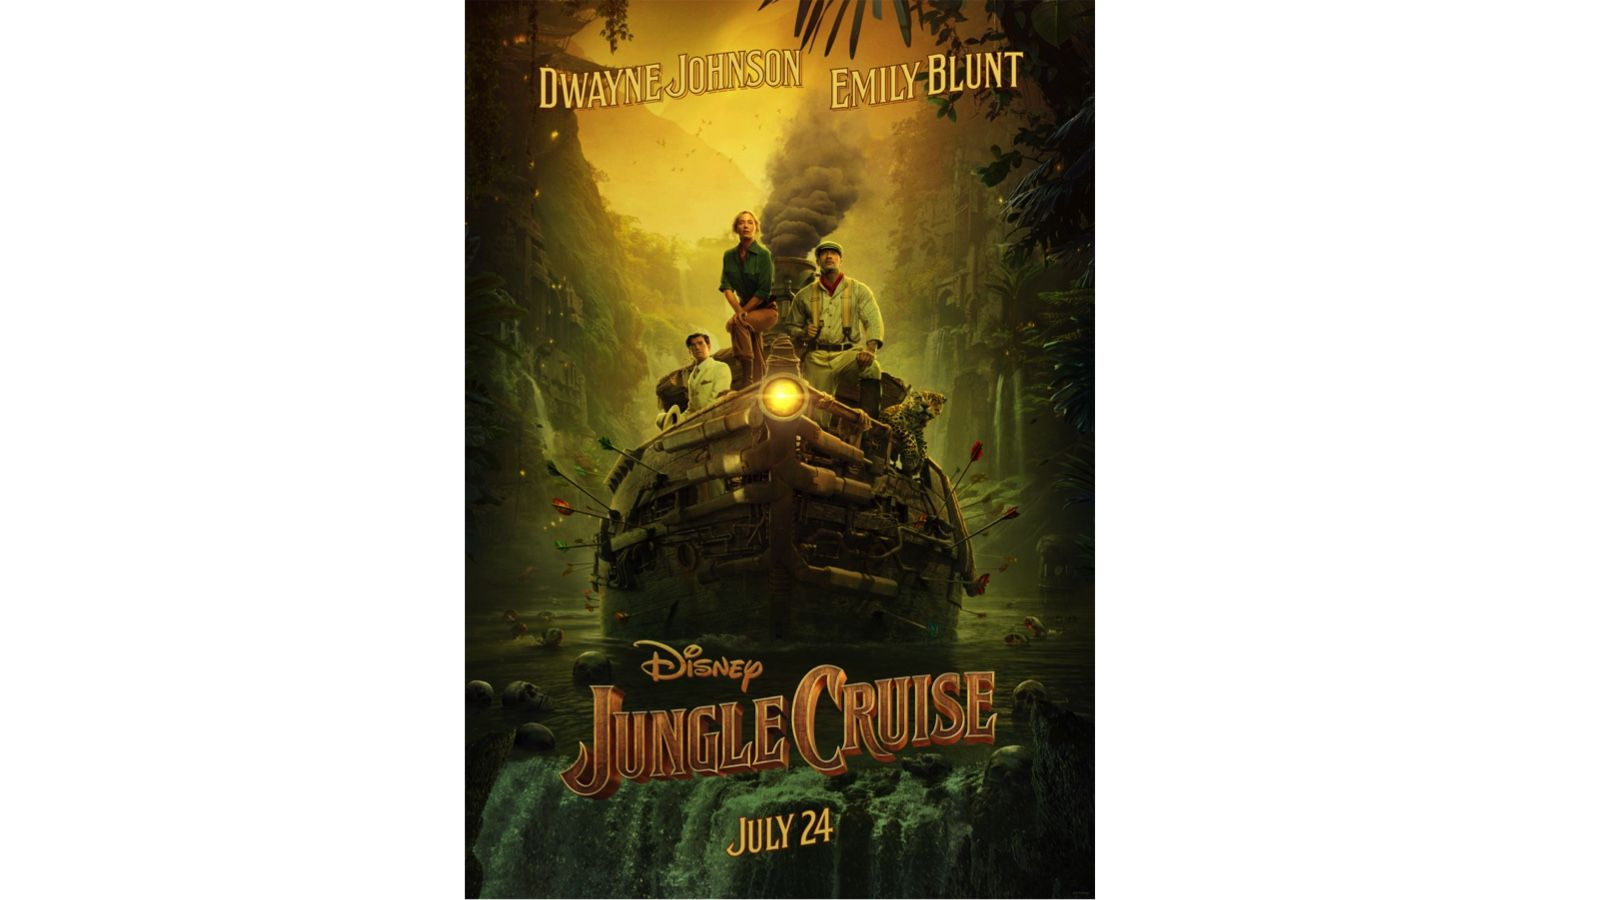 New Jungle Cruise Trailer Released Leaving Disney Parks Fans In De Nile Disney Parks Disney Parks Blog Cruise